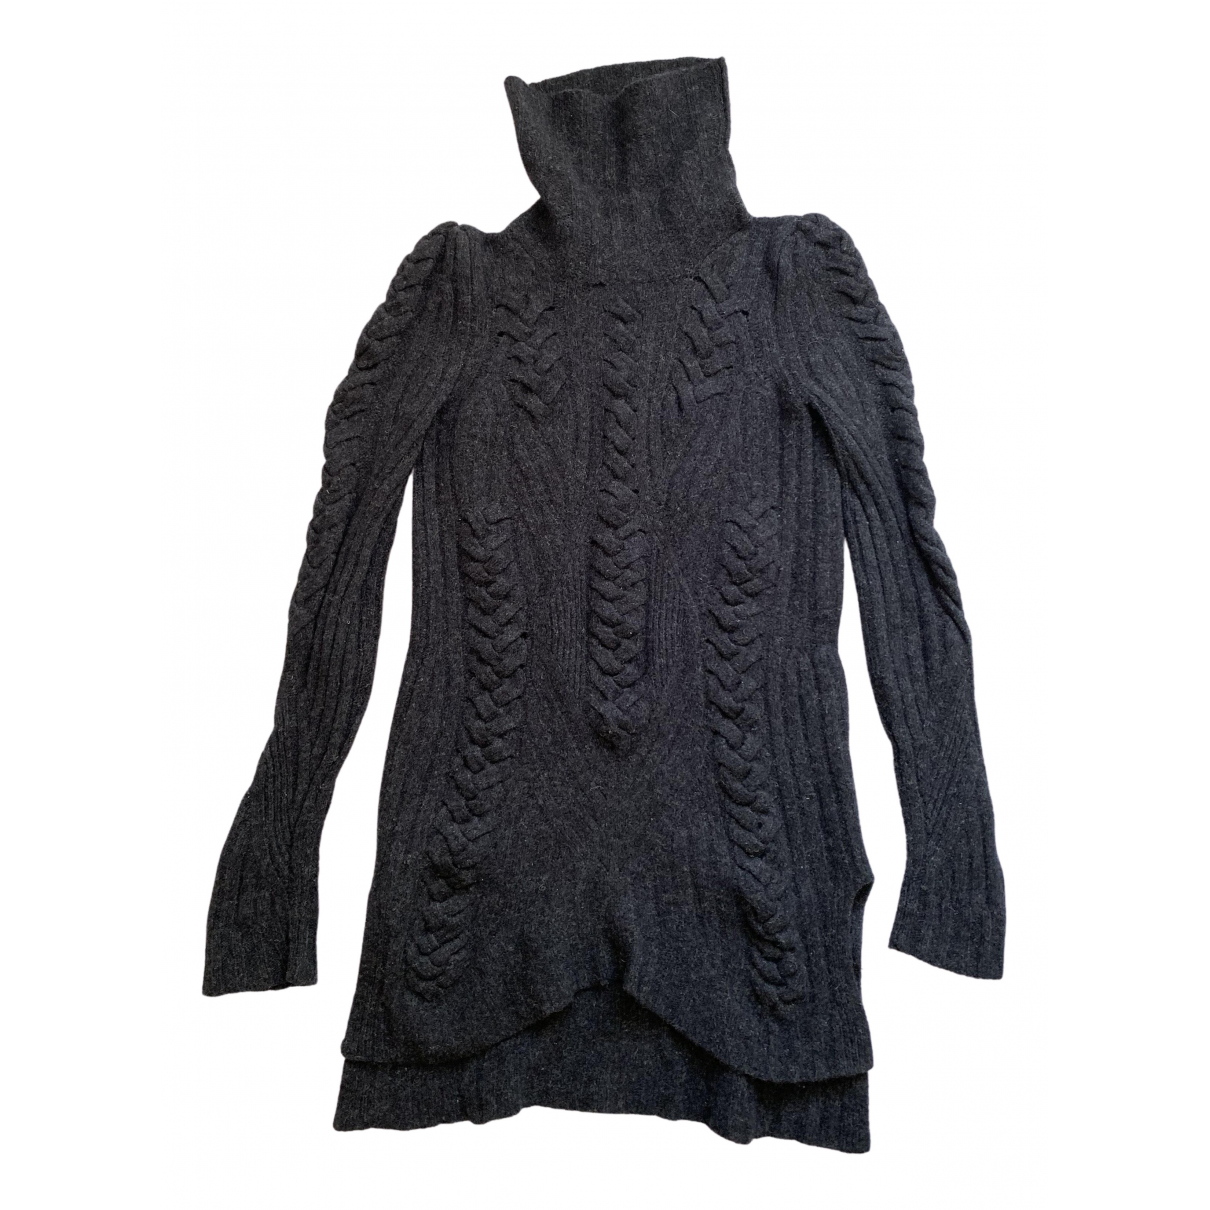 Celine \N Pullover in  Anthrazit Wolle